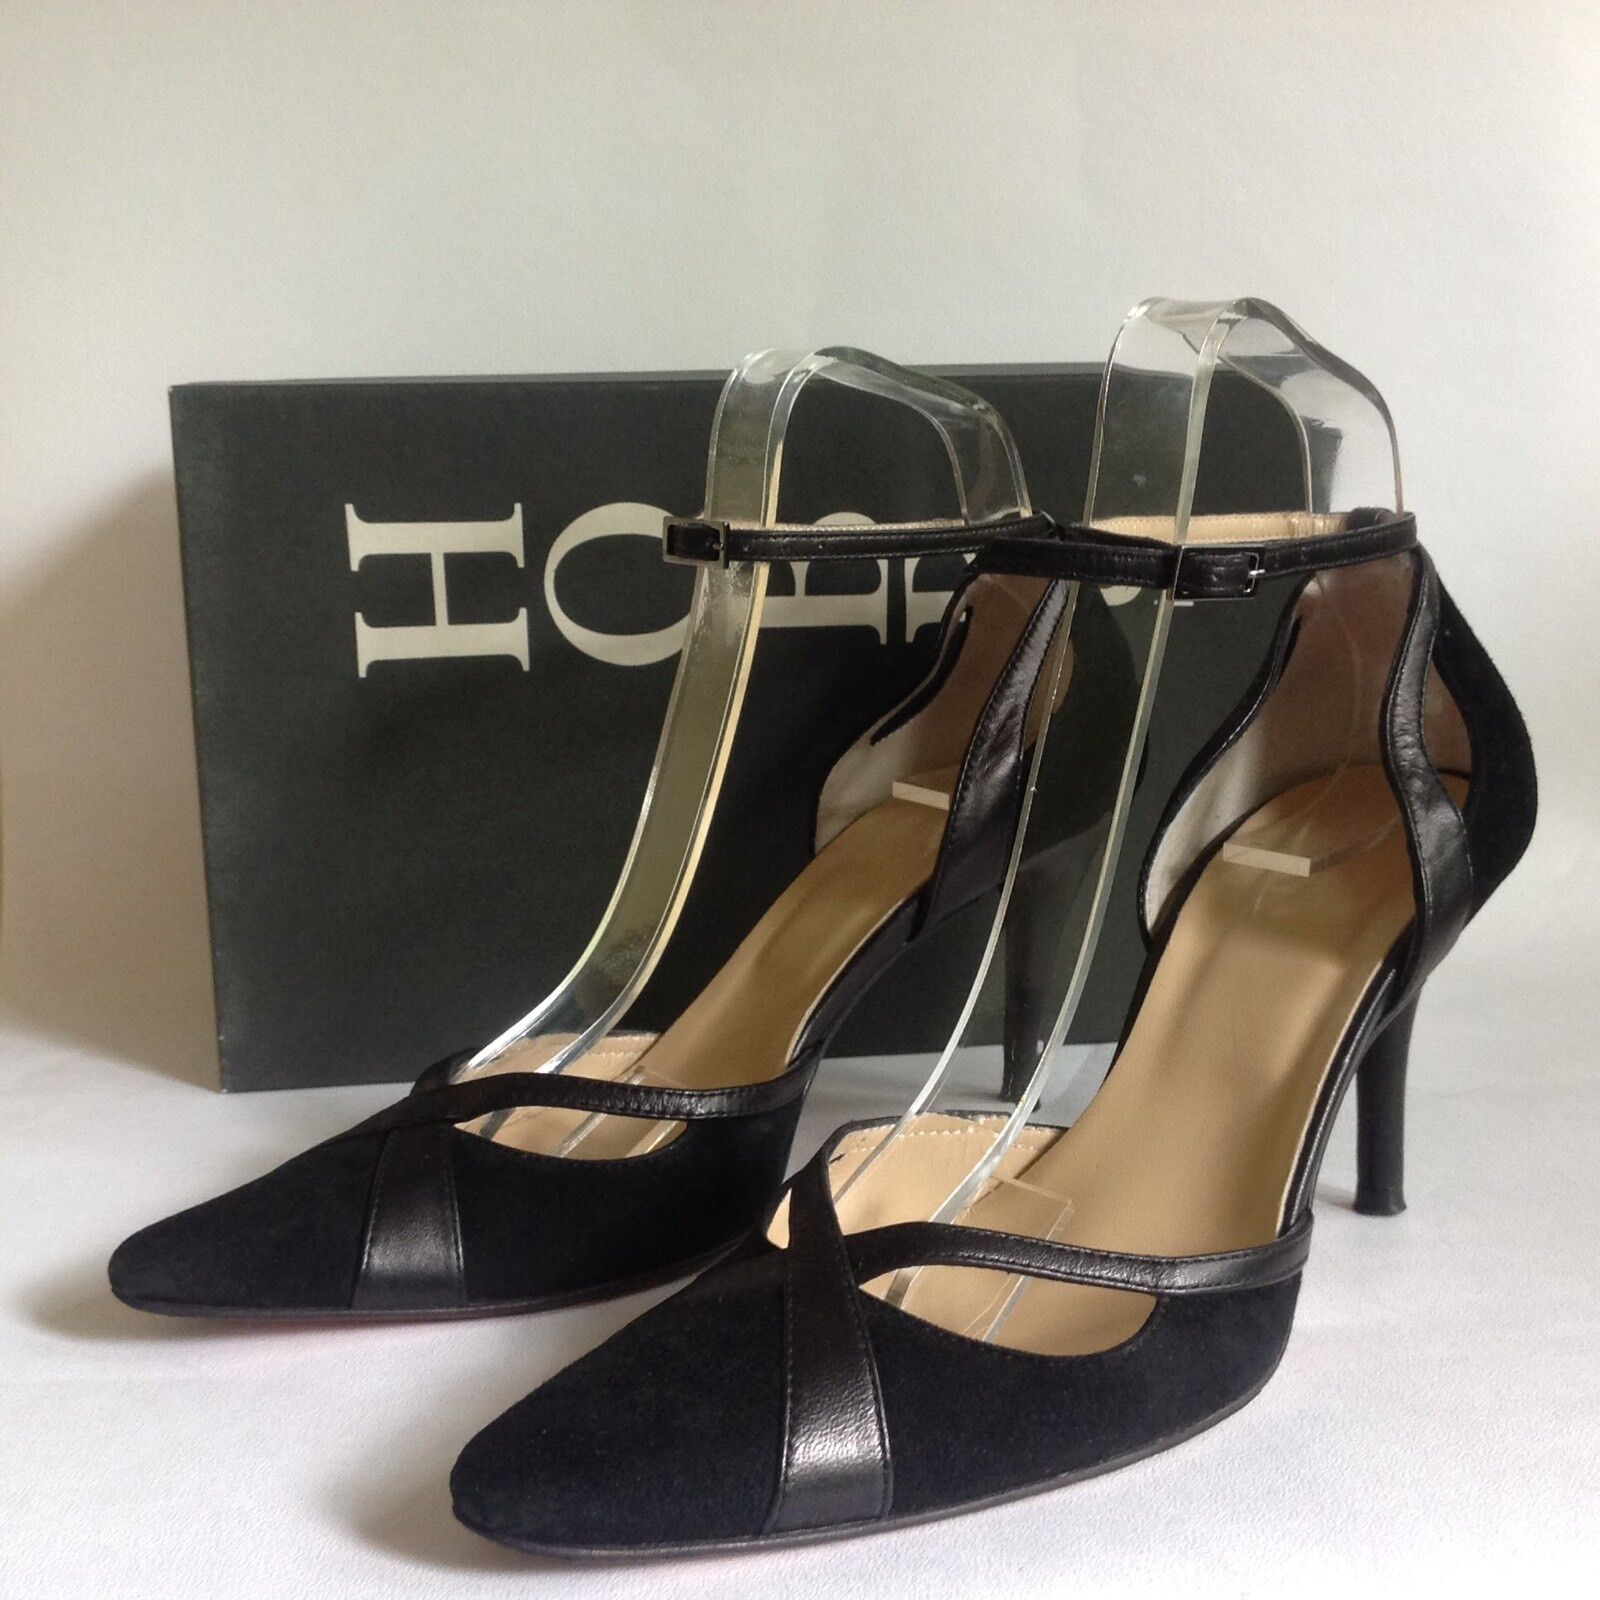 Hobbs Black Suede & Leather Mary Jane 3.5